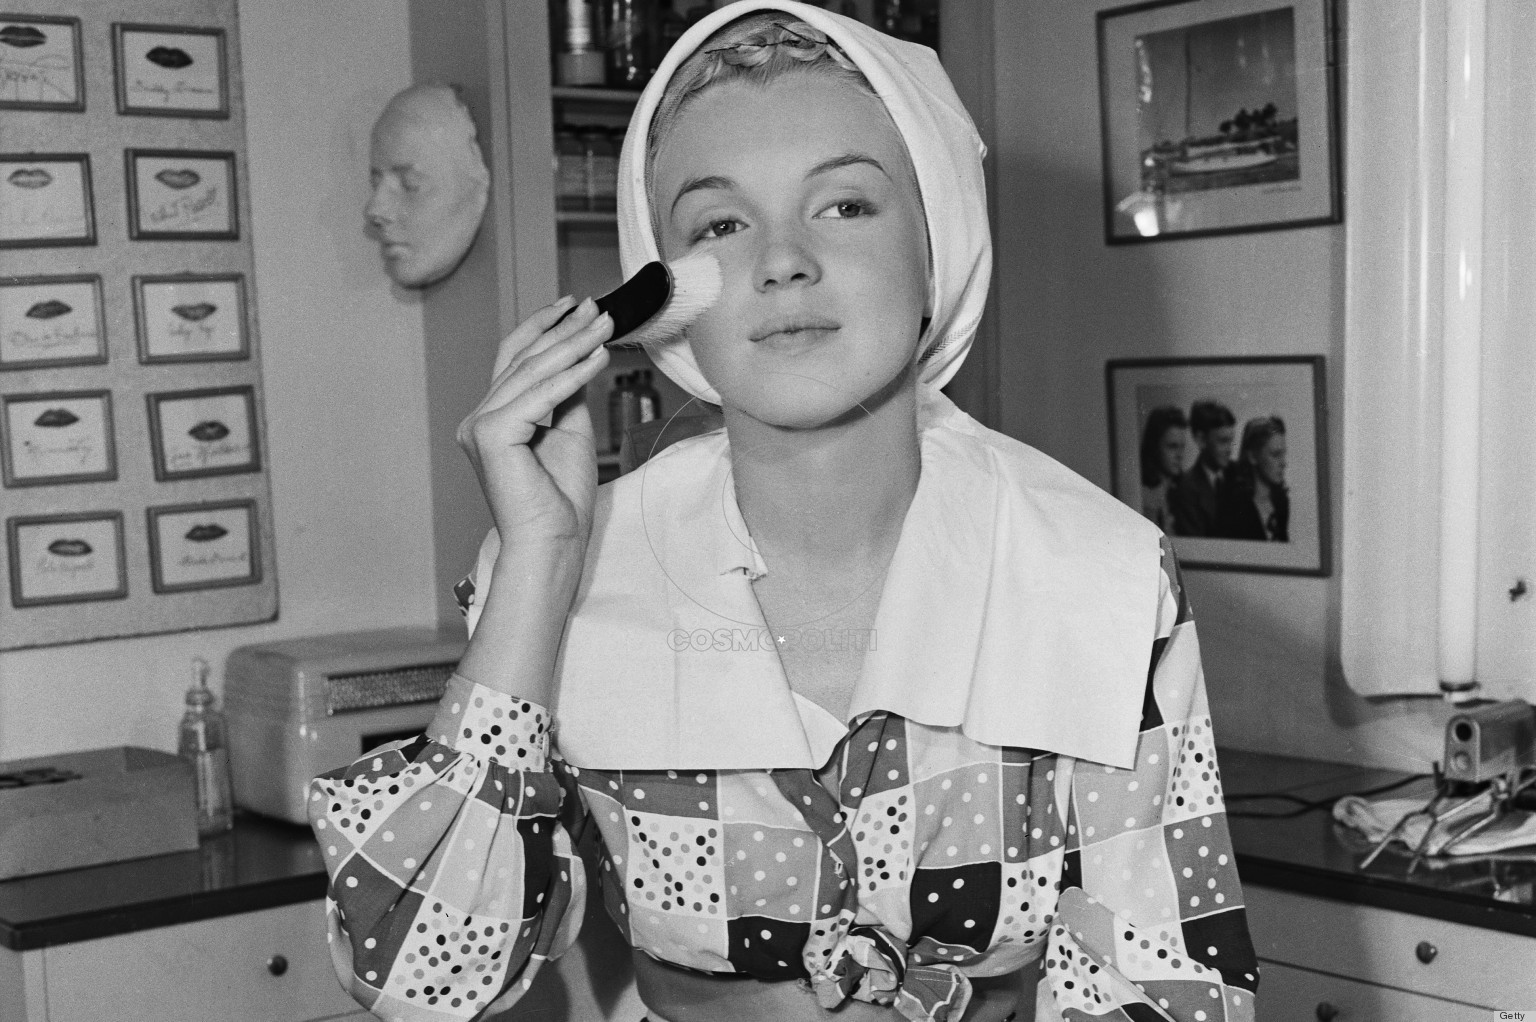 American film star Marilyn Monroe (1926 - 1962) begins the process of applying her make-up, 1948. (Photo by John Kobal Foundation/Getty Images)